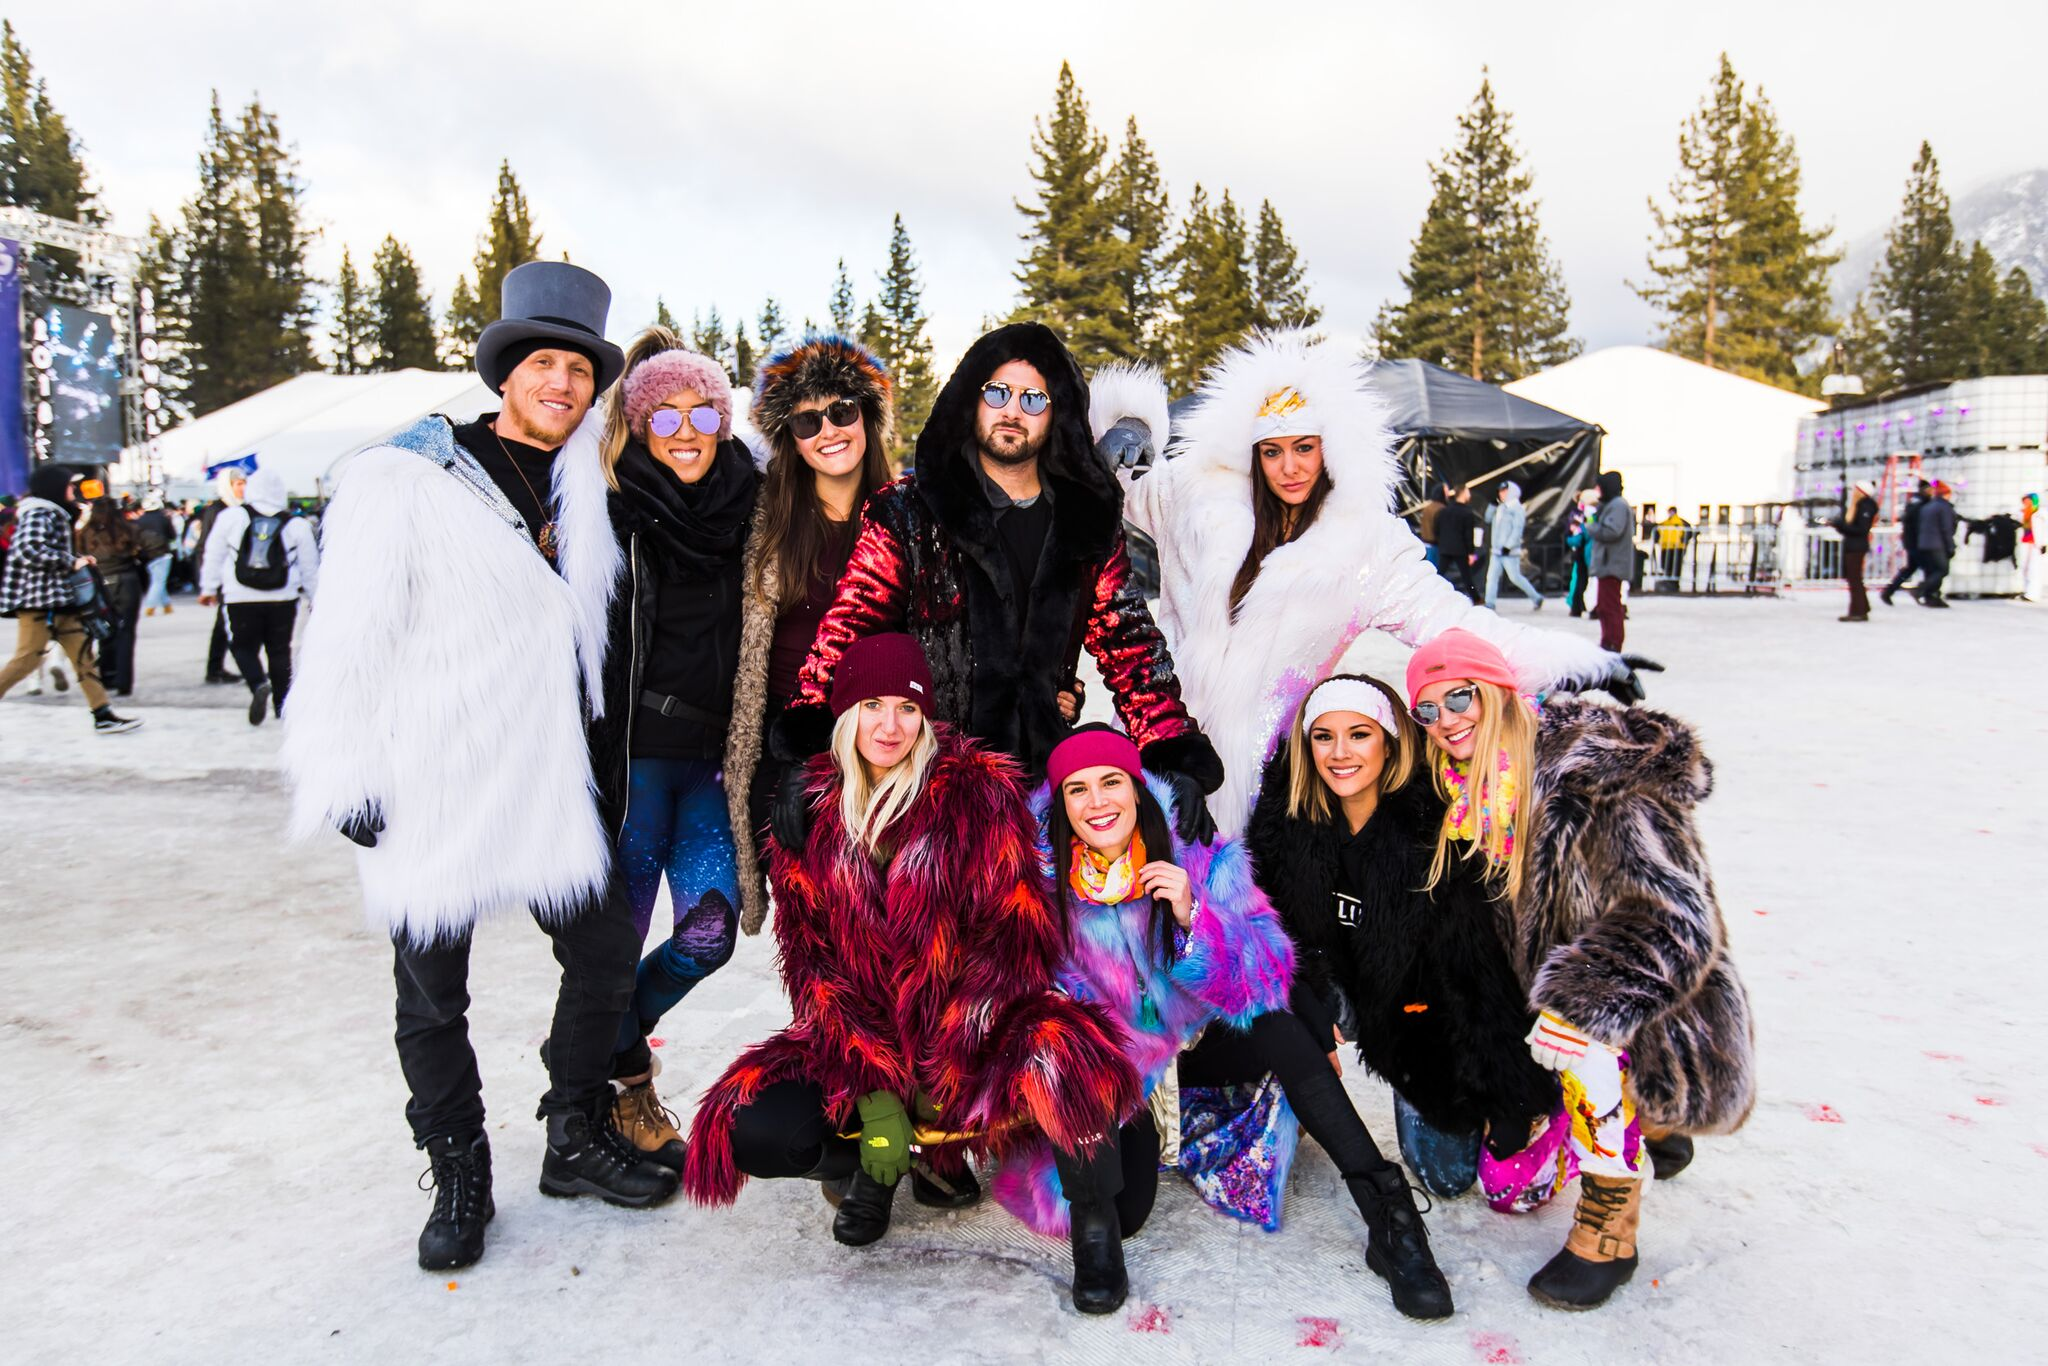 photos courtesy of SnowGlobe Music Festival